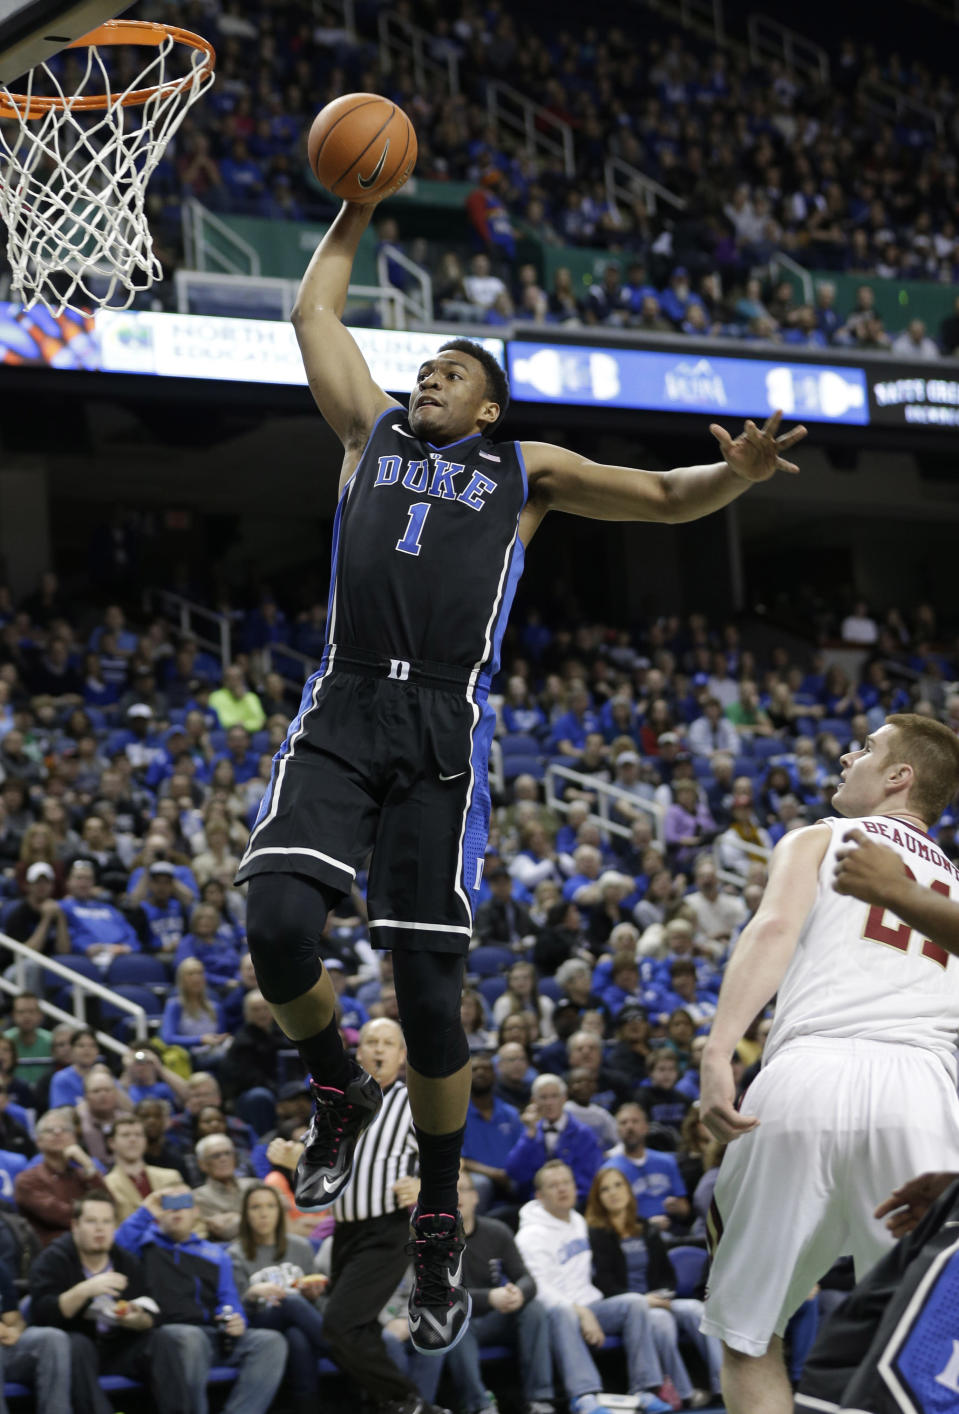 Duke's Jabari Parker (1) sails past Elon's Ryley Beaumont (21) for a dunk during the first half of an NCAA college basketball game in Greensboro, N.C., Tuesday, Dec. 31, 2013. (AP Photo/Chuck Burton)